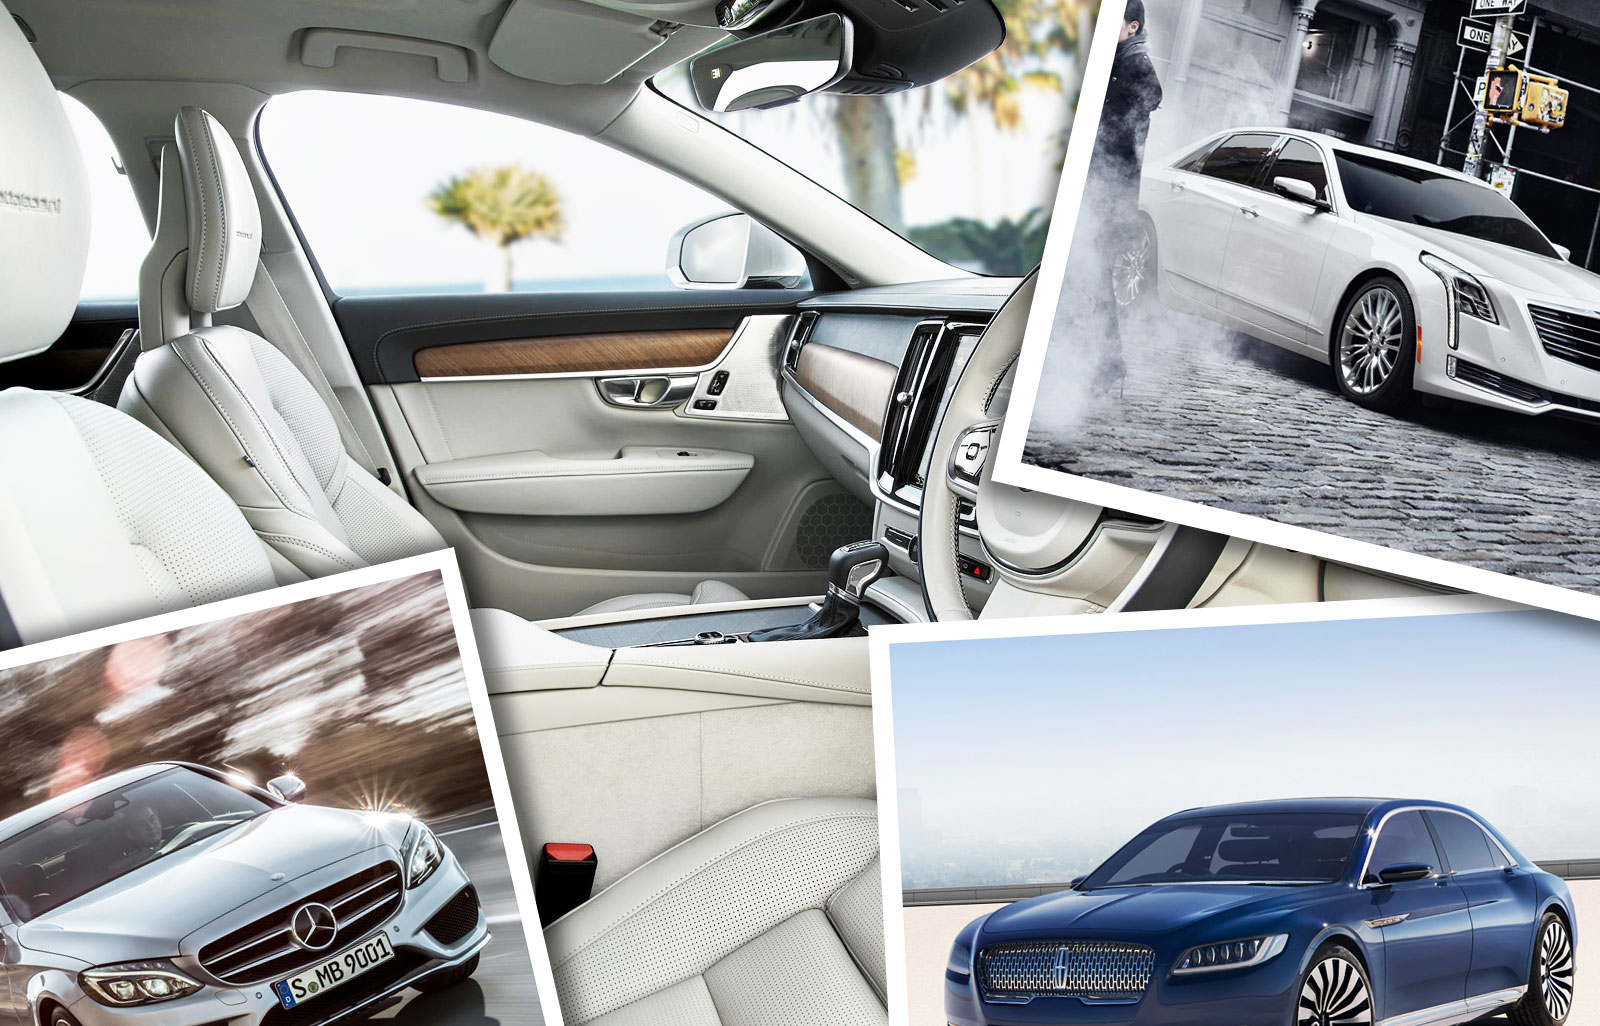 Luxury 2019 Vehicles: Ten Of The Most Comfortable Real-World Luxury Cars Of 2019